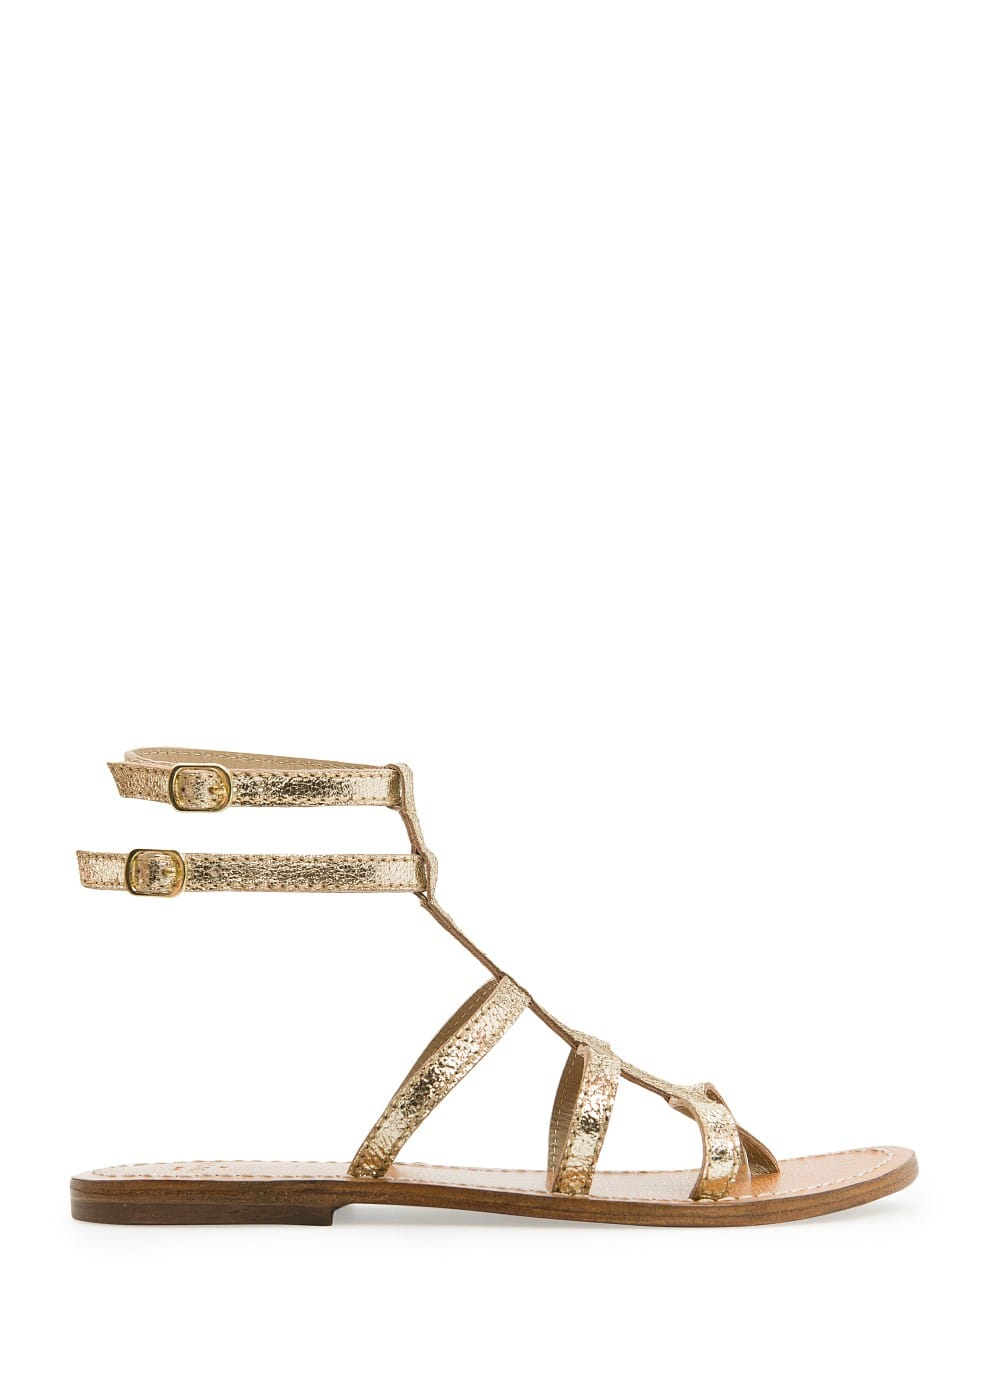 Metallic strappy leather sandals